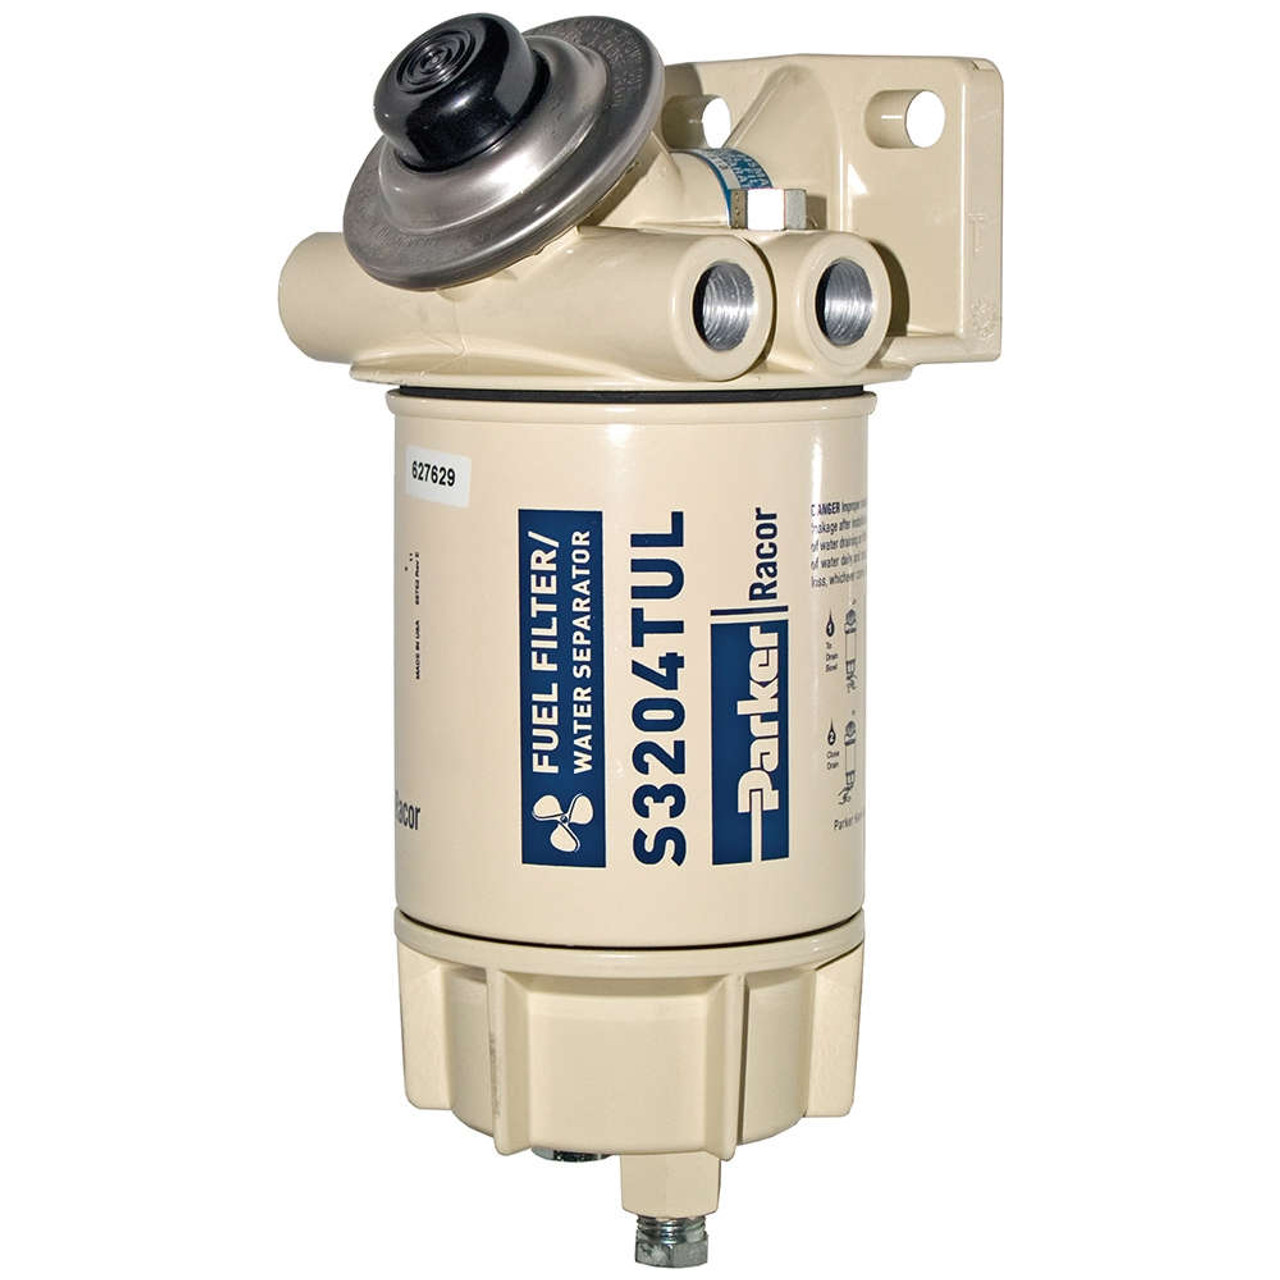 small resolution of racor aquabloc marine 3 8 in 45 gph spin on diesel fuel filter water separator assembly 6 qty john m ellsworth co inc